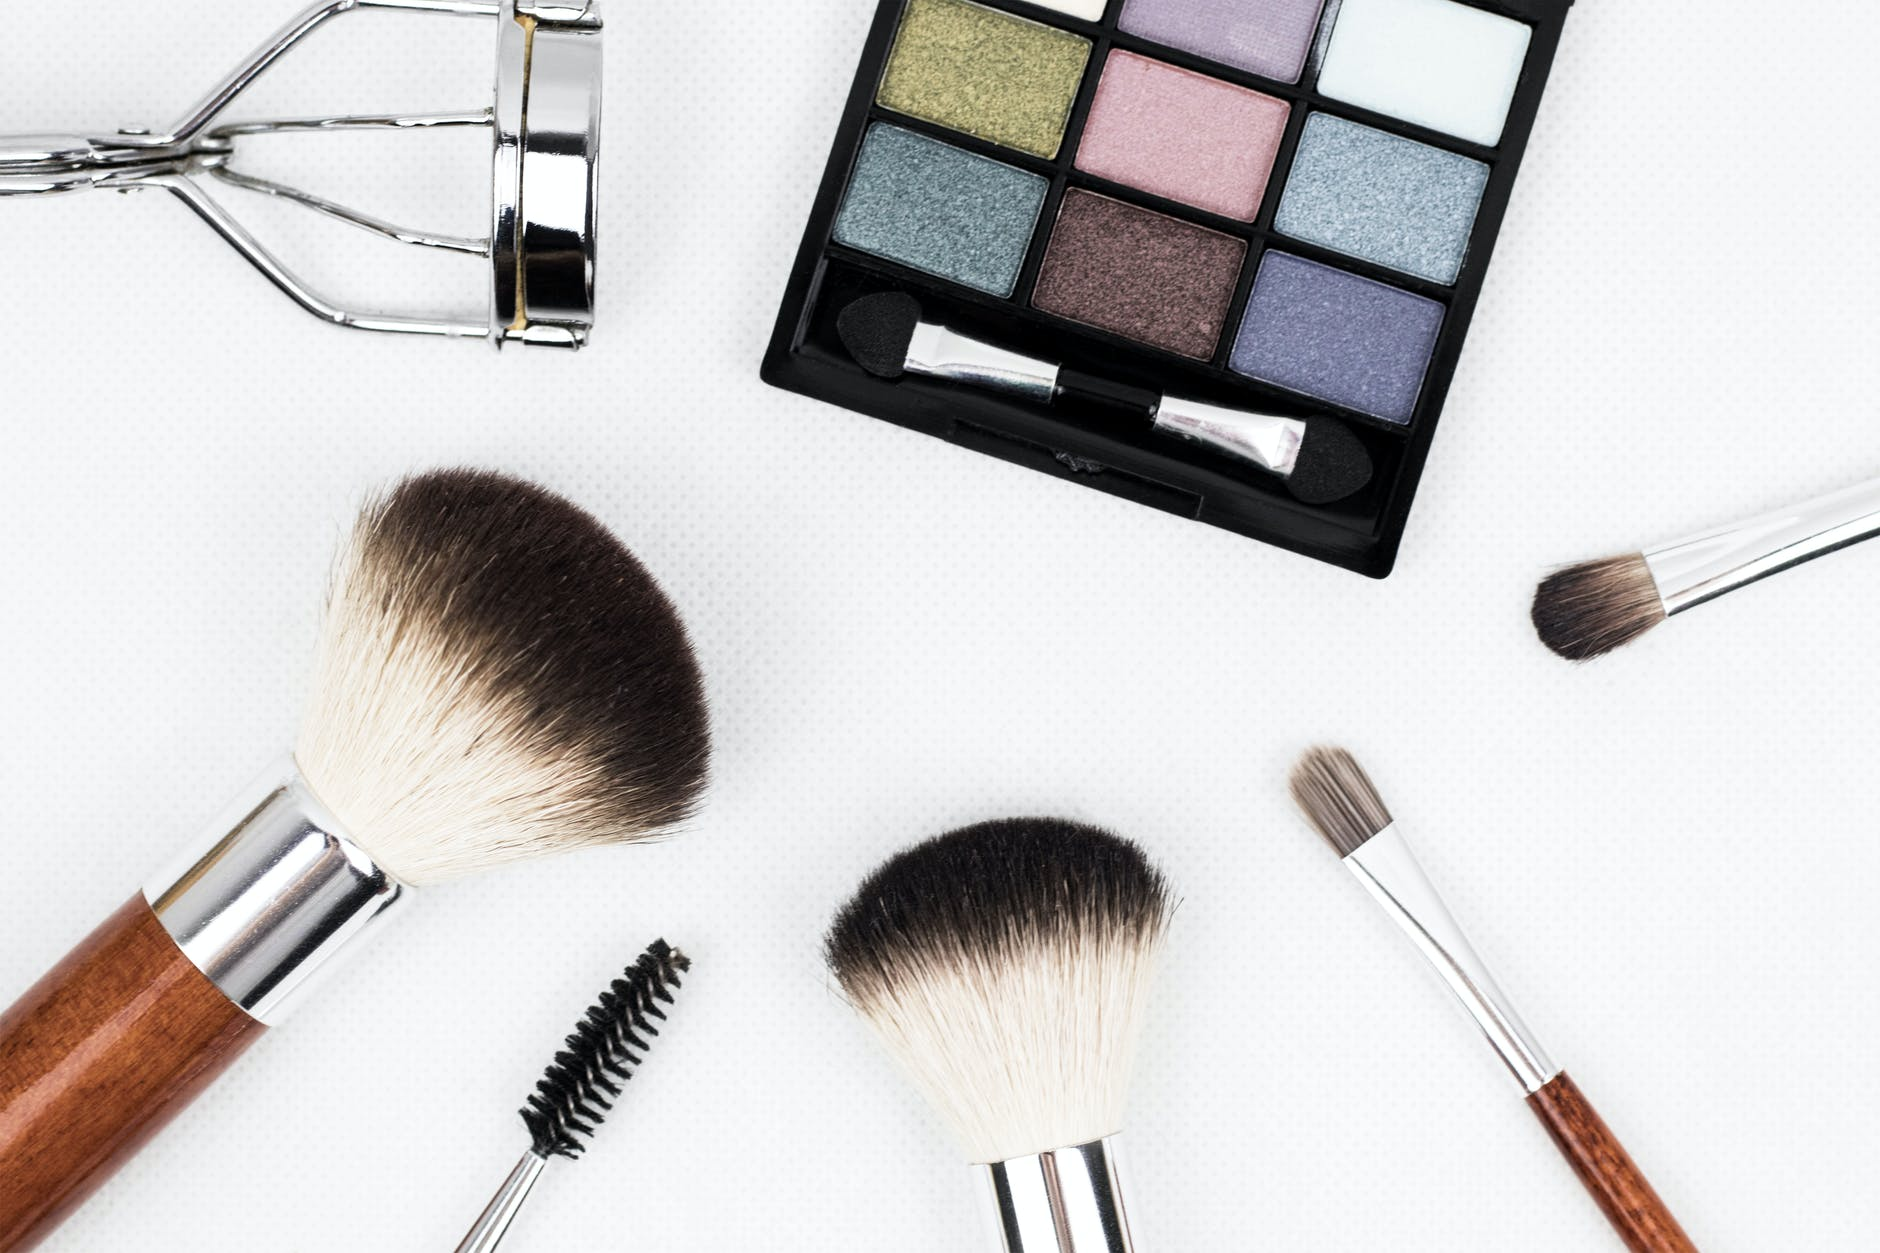 Cosmetic is an indispensable item that women should buy on Black Friday sale